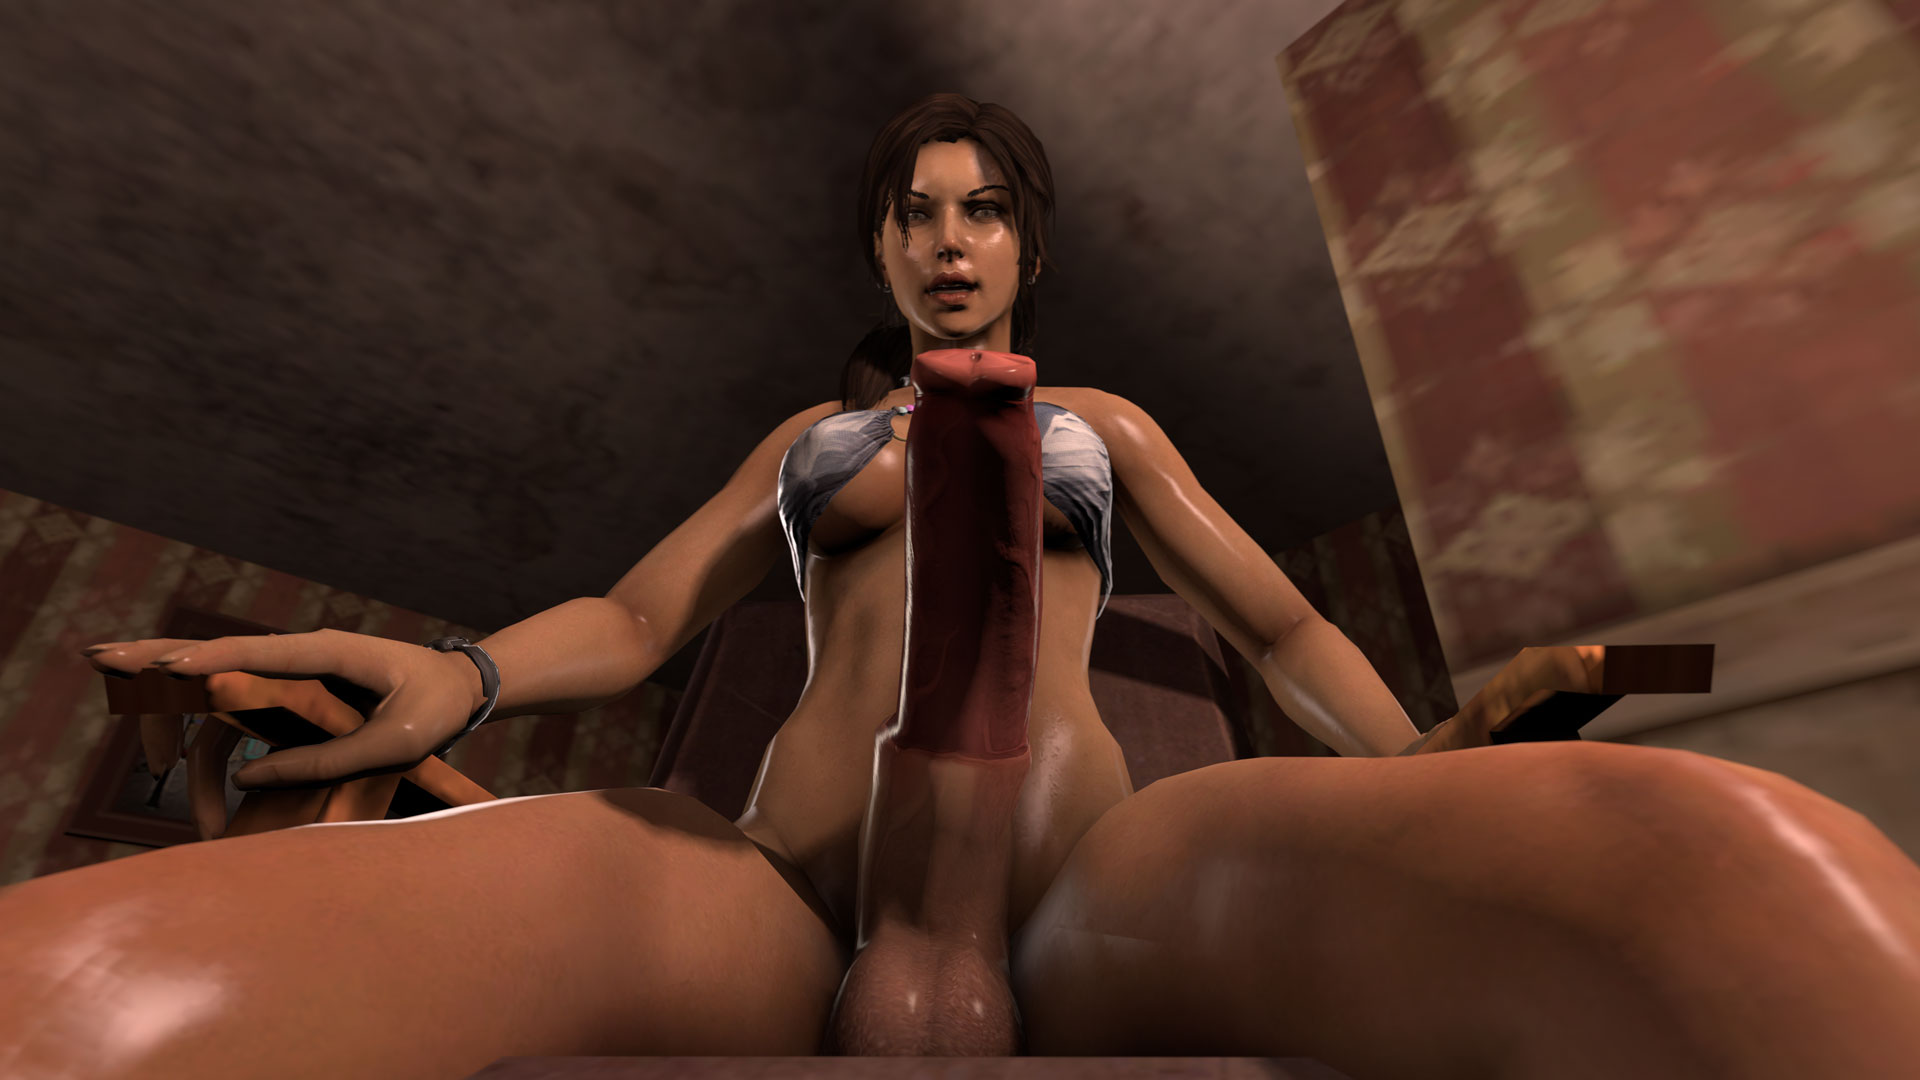 Fantasy tomb raider sex naked full hd  xxx films